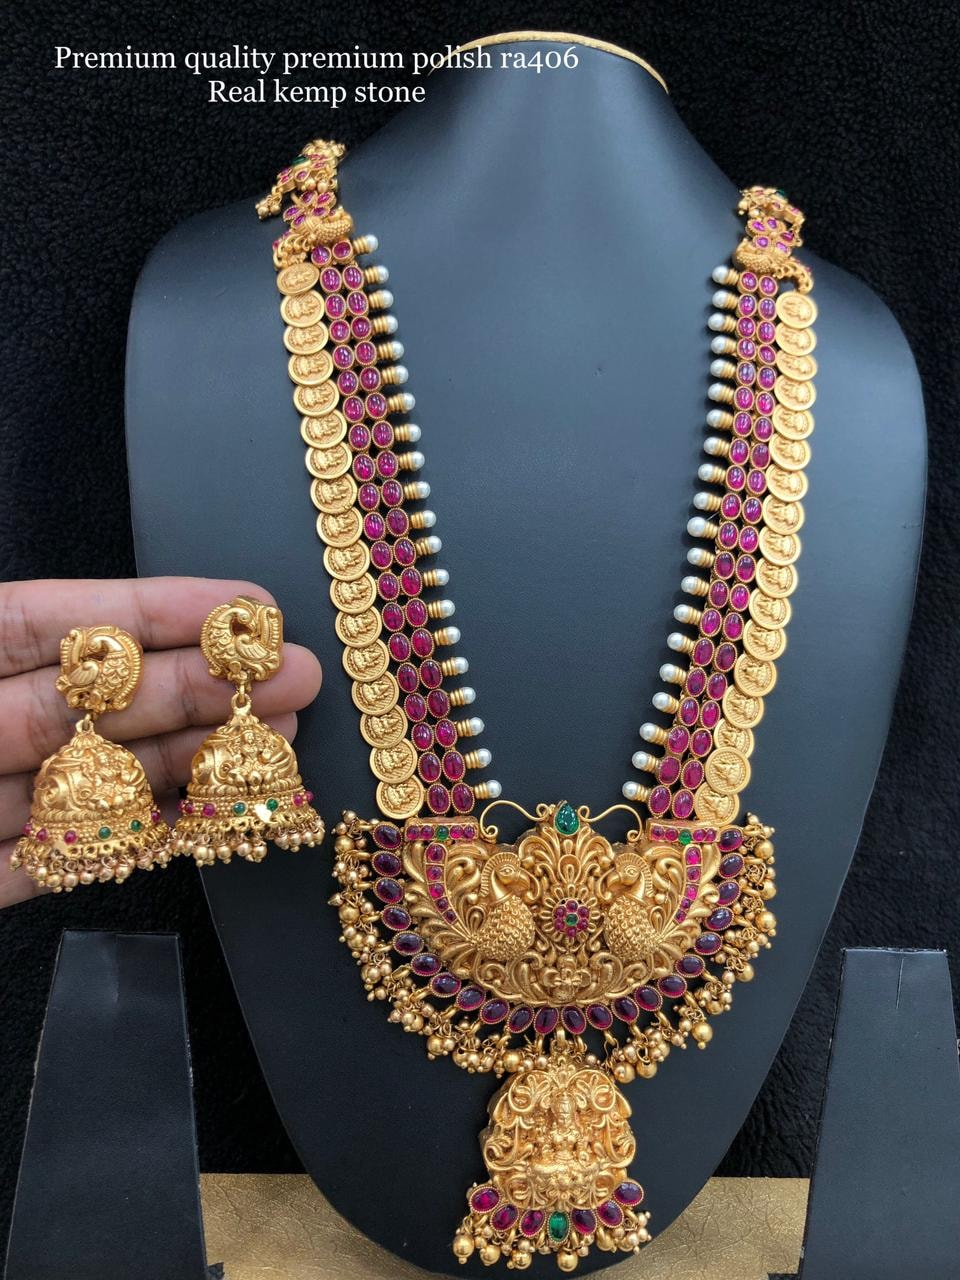 Stunning one gram gold Lakshmi haaram with Peacock pendant. Long haaram studded with pink color stones. one gram gold jewellery long chains one gram jewellery designs 1 gm gold ornaments